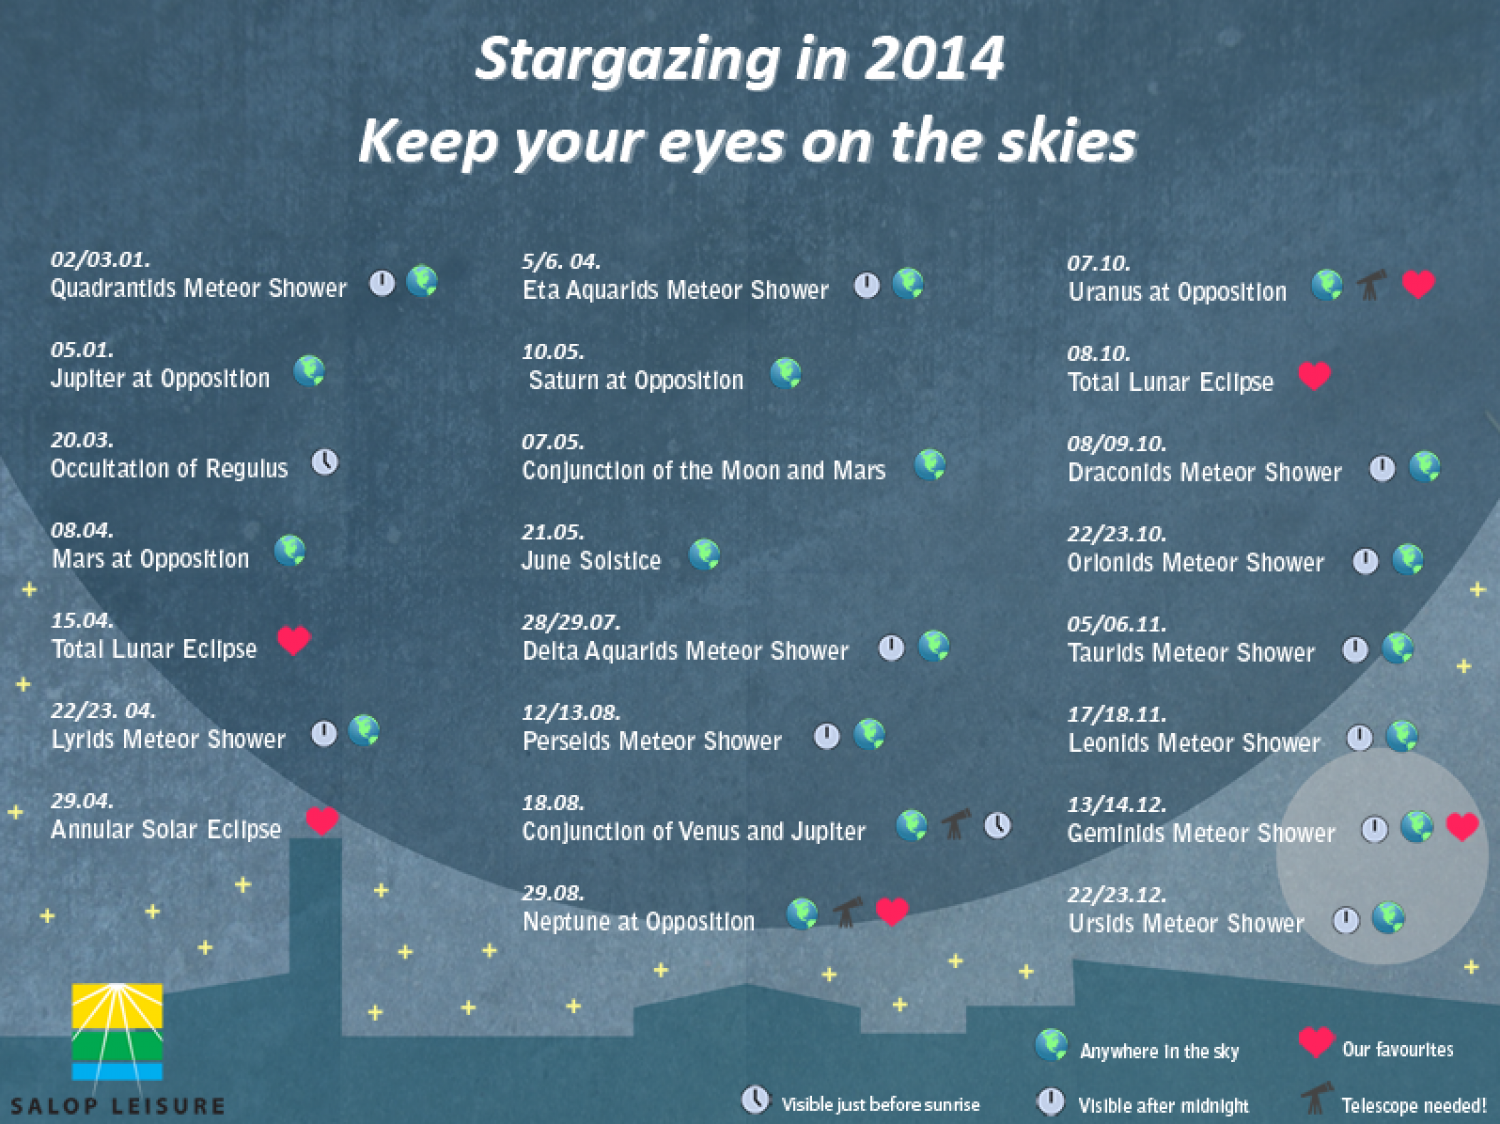 Stargazing in 2014 : Keep Your Eyes on The Skies Infographic